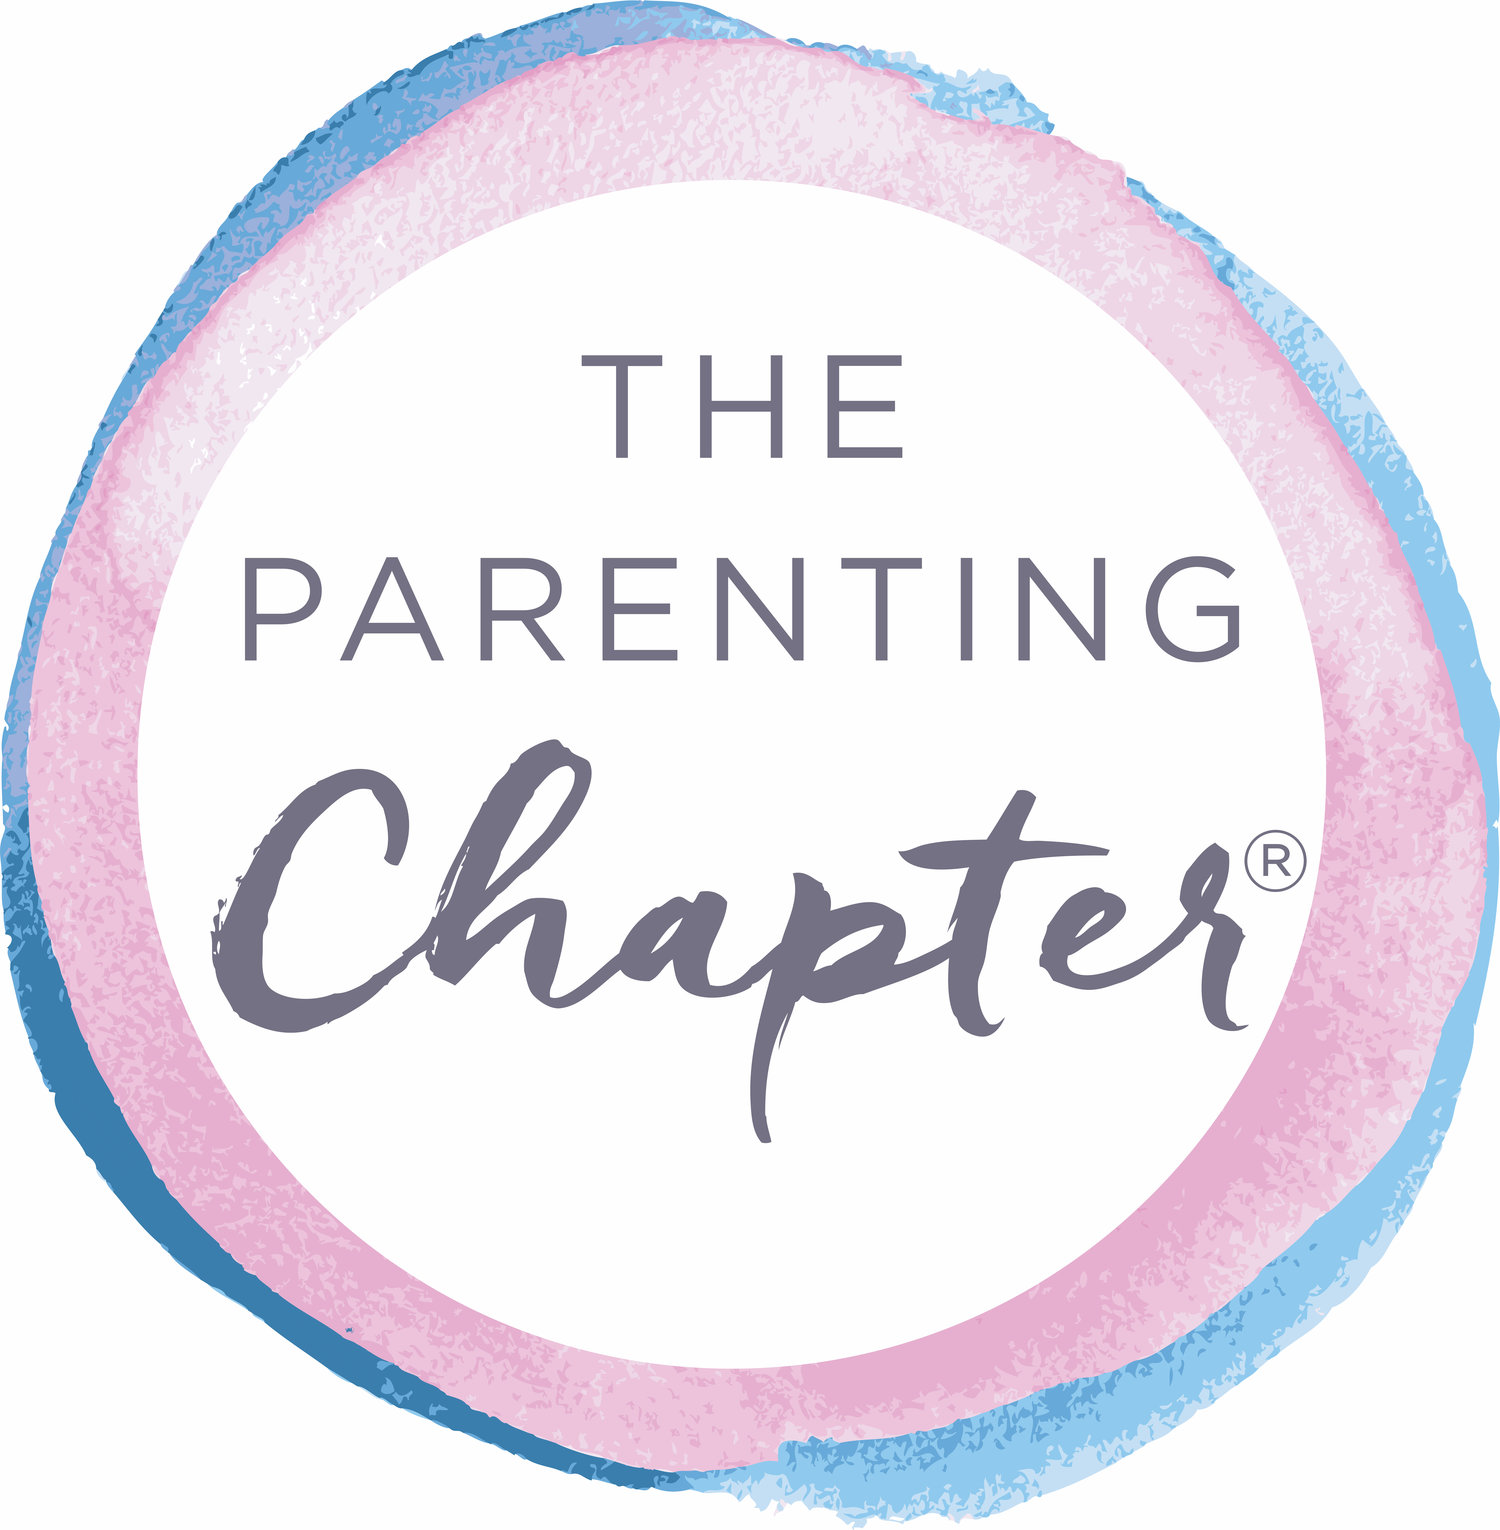 The Parenting Chapter